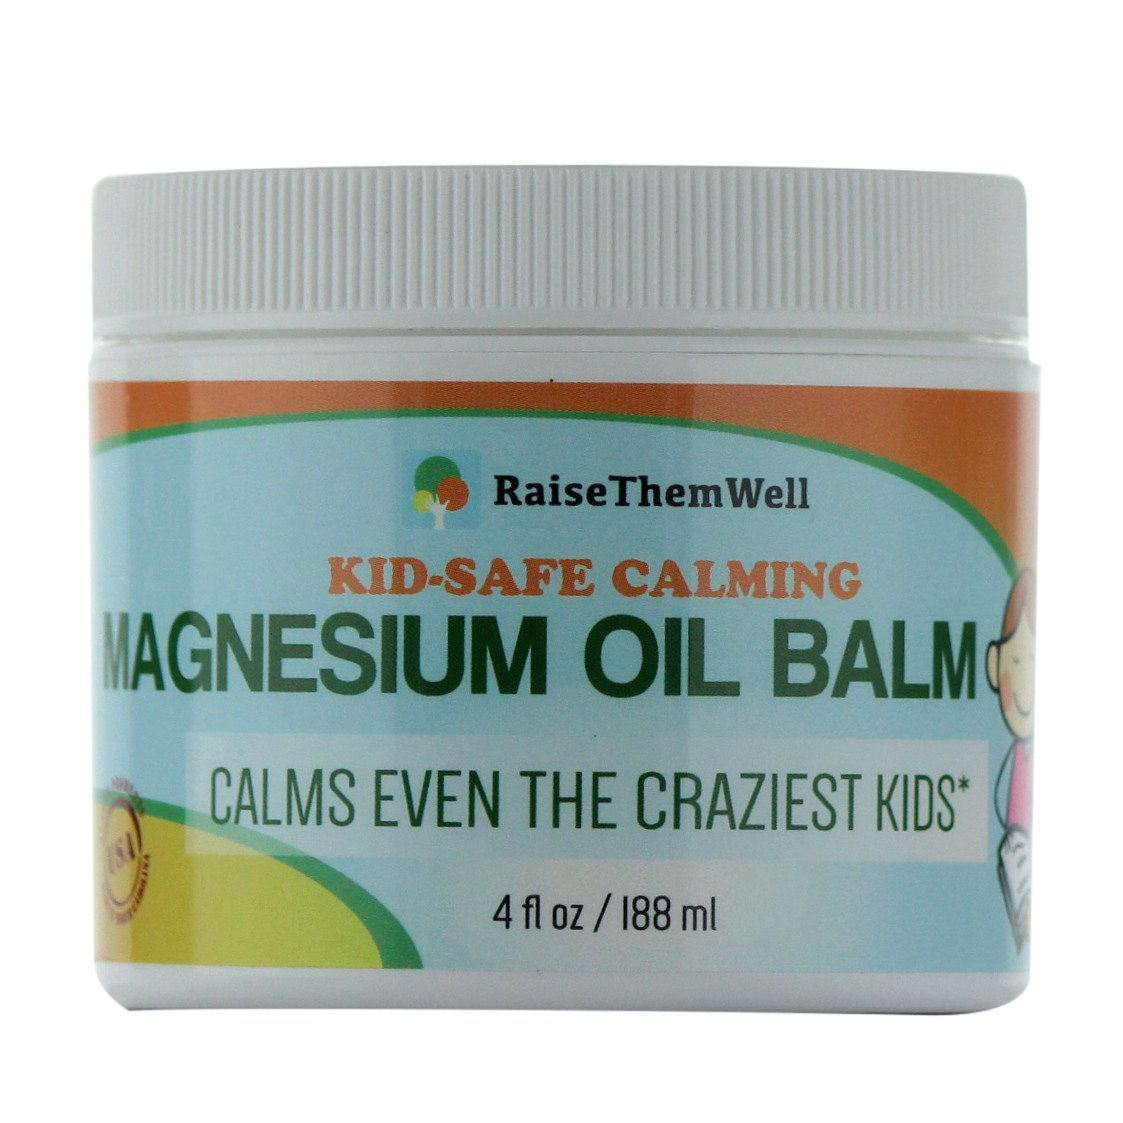 Kid-Safe Calming Magnesium Oil Balm. Formulated for Sensitive Skin. by Raise Them Well